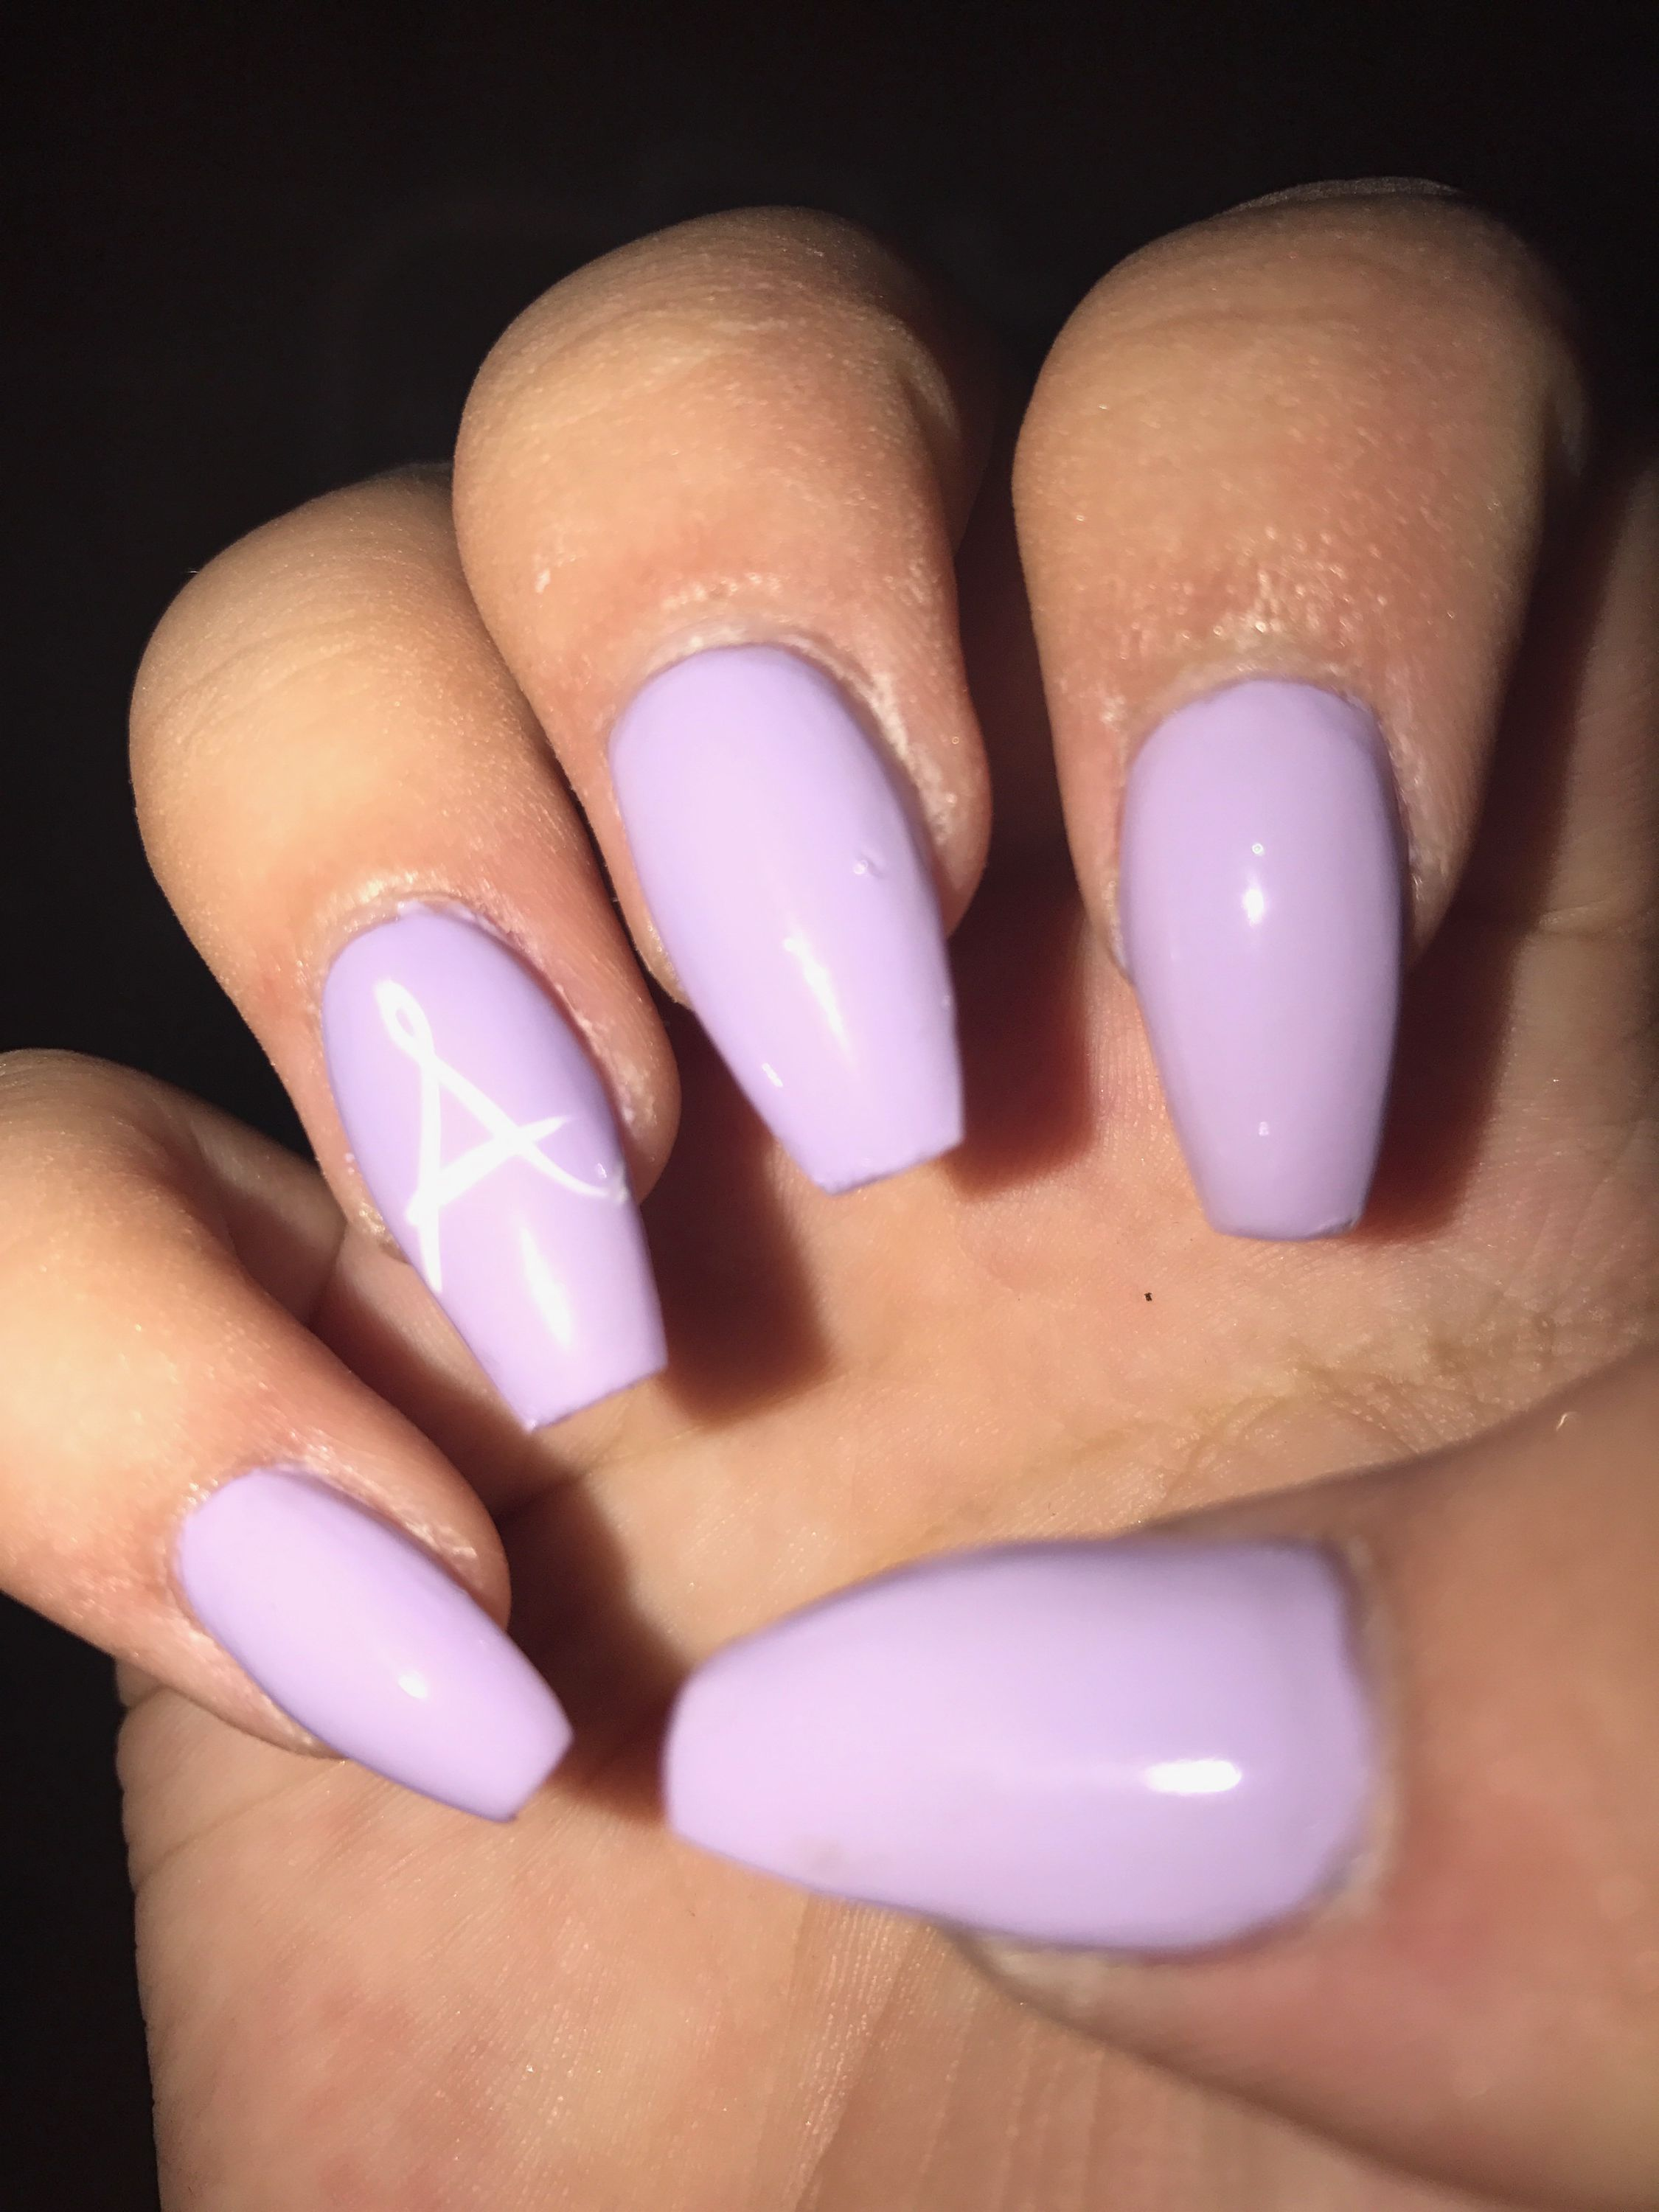 Baby got my initials on her nails and my favorite color | Nails ...